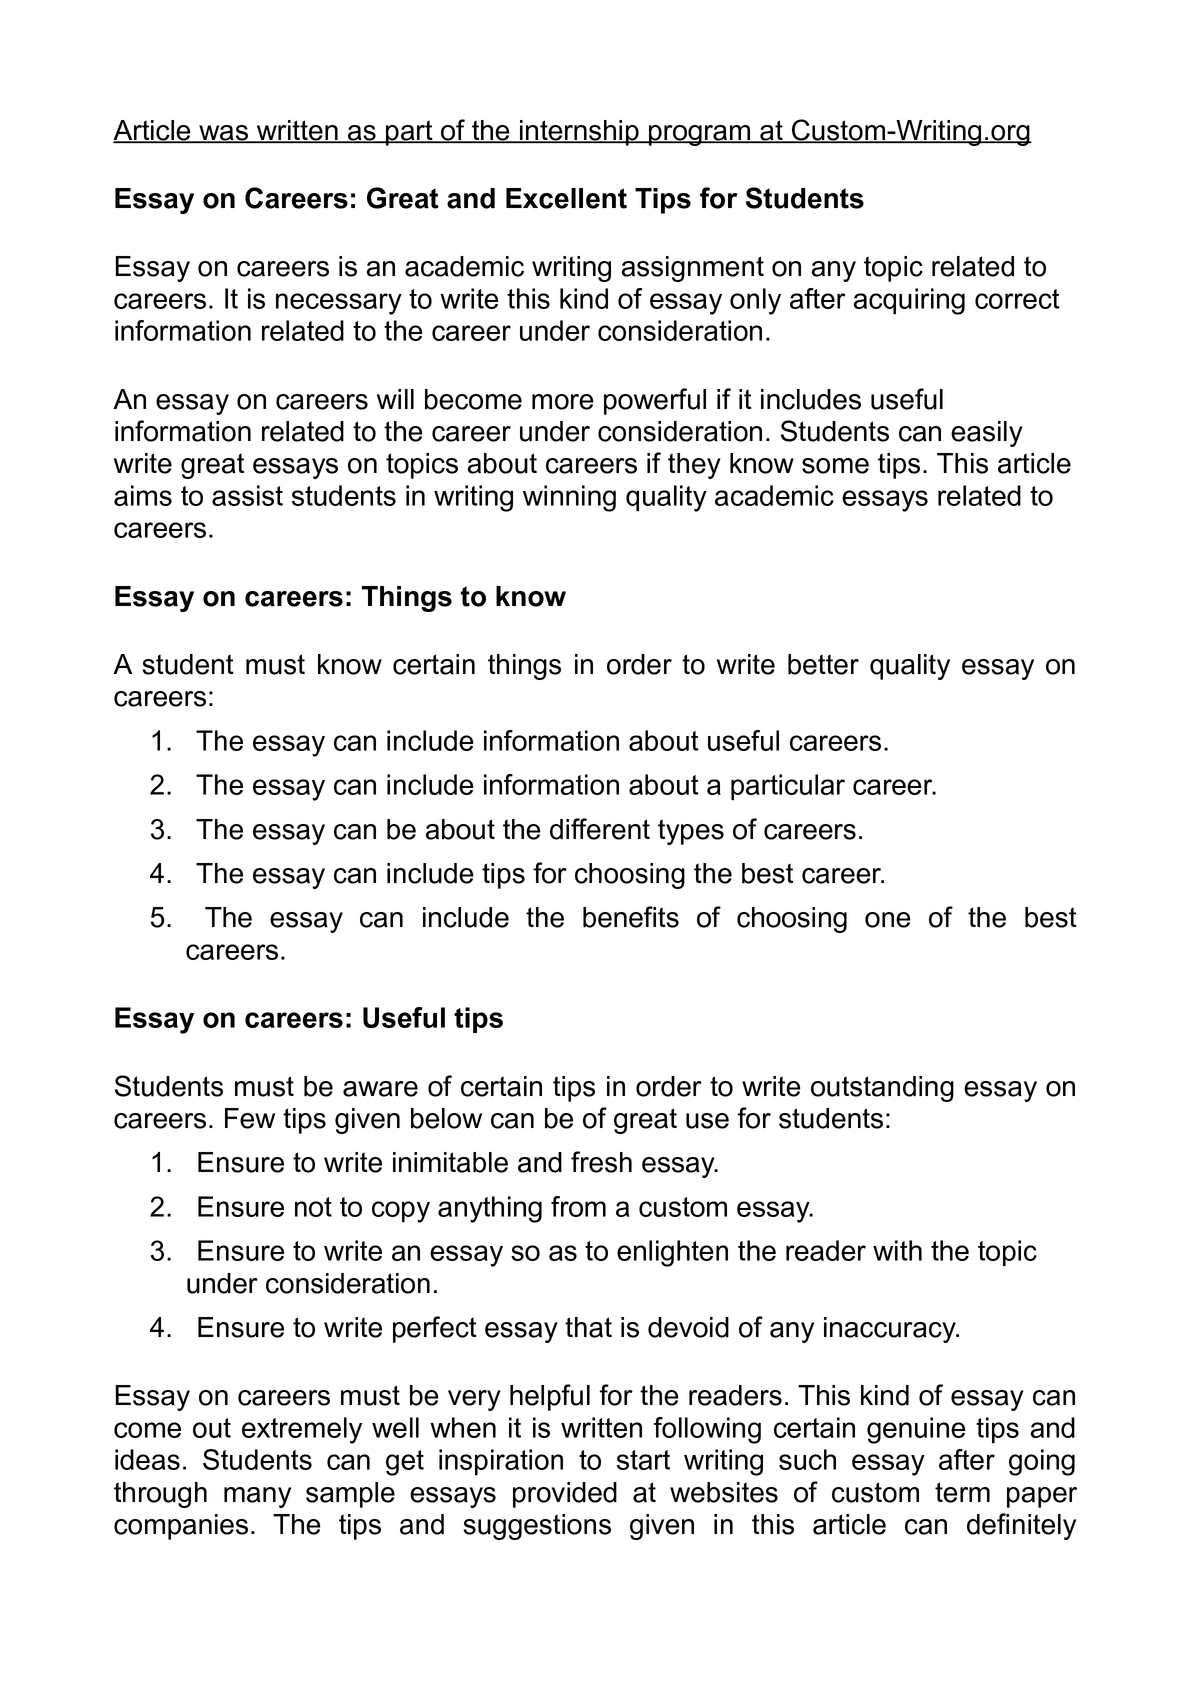 Essays For High School Students  Persuasive Essay Examples For High School also Sample High School Essay Calamo  Essay On Careers Great And Excellent Tips For Students Essays On Health Care